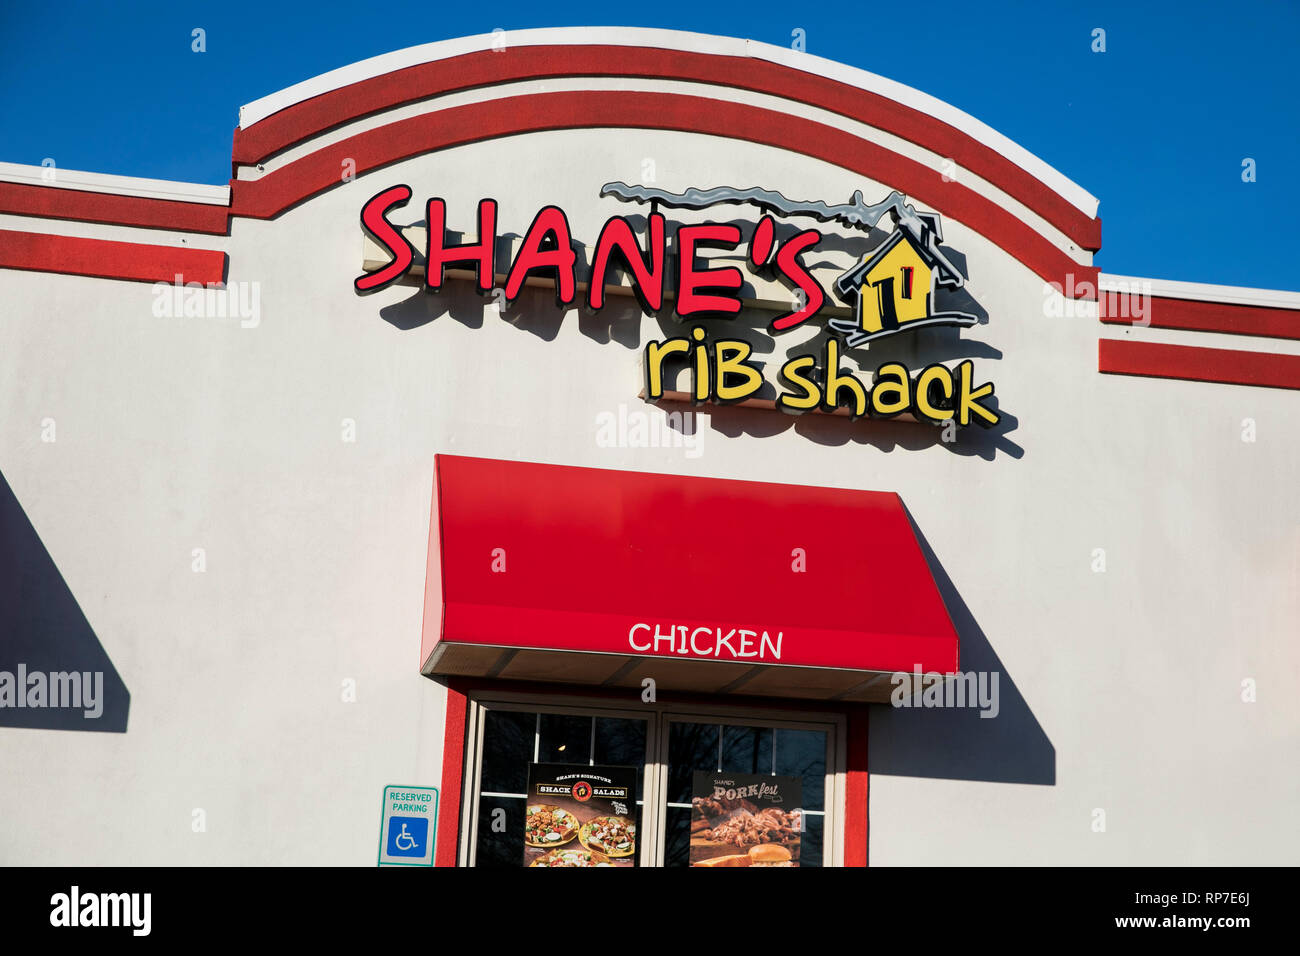 A logo sign outside of a Shane's Rib Shack restaurant location in Fredericksburg, Virginia on February 19, 2019. - Stock Image